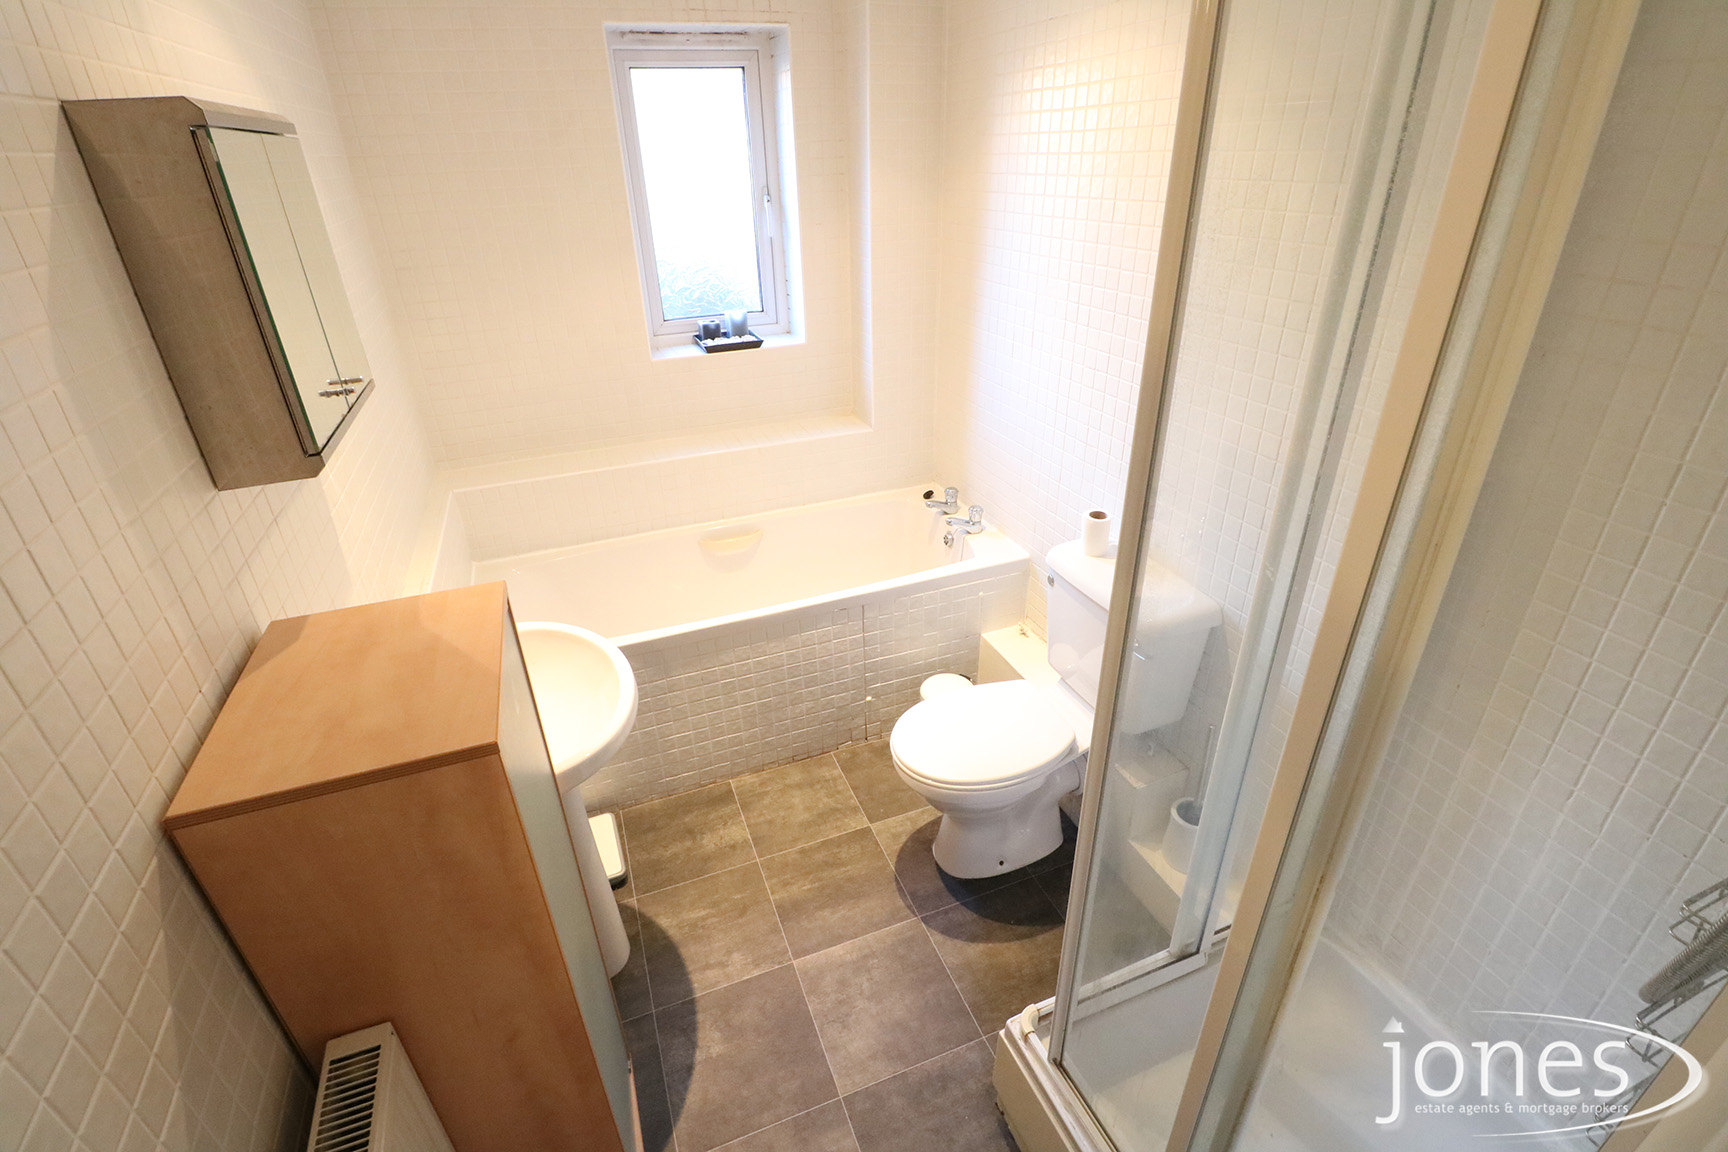 Home for Sale Let - Photo 08 Chart House, Admiral Way,Hartlepool Marina, Hartlepool TS24 0WB